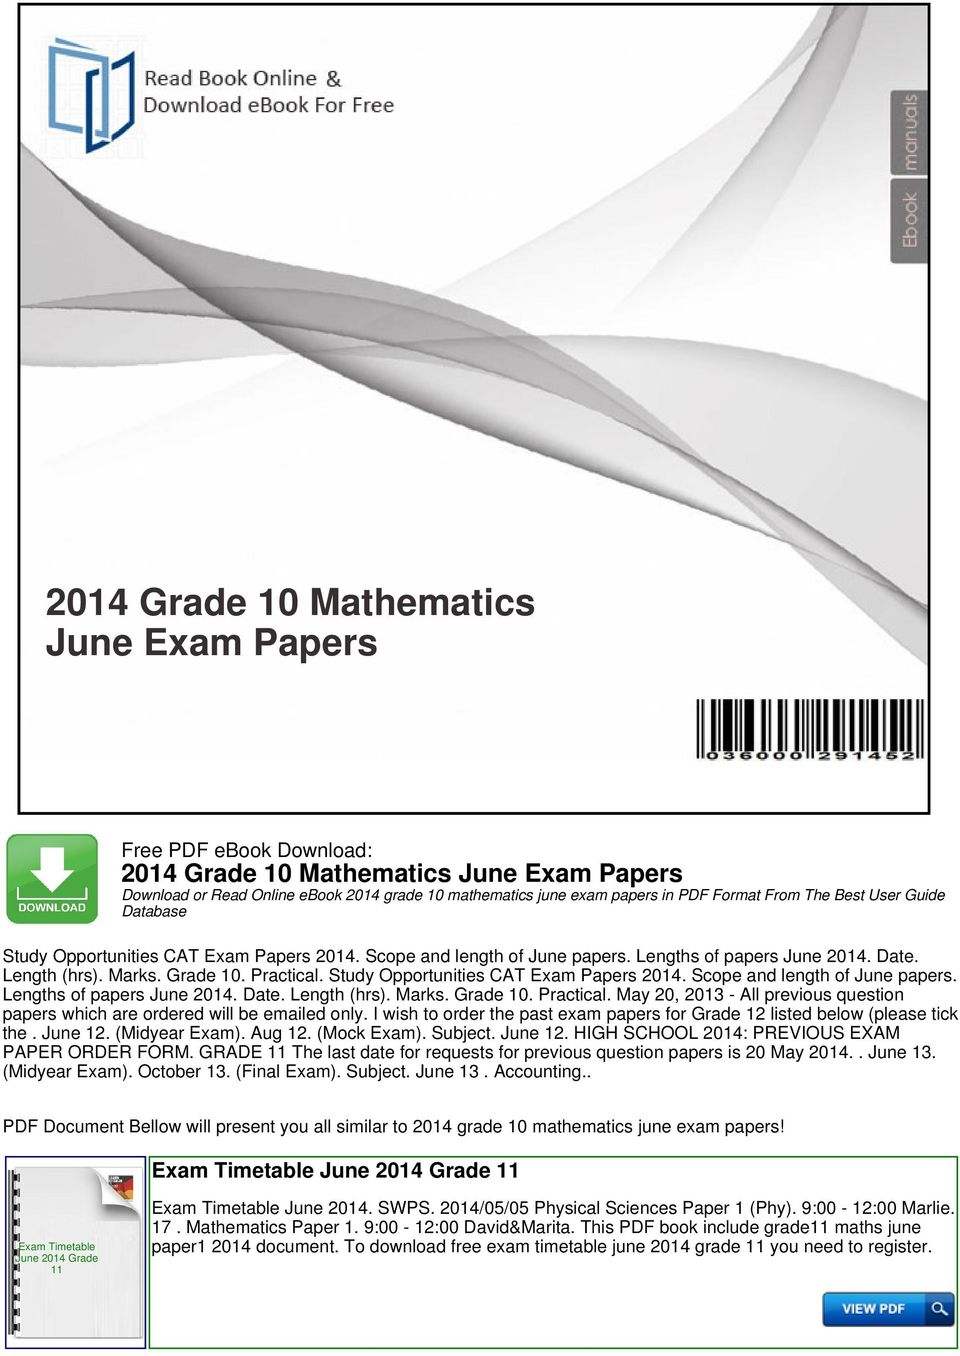 Study Opportunities CAT Exam Papers 2014. Scope and length of June papers. Lengths of papers June 2014. Date. Length (hrs). Marks. Grade 10. Practical.